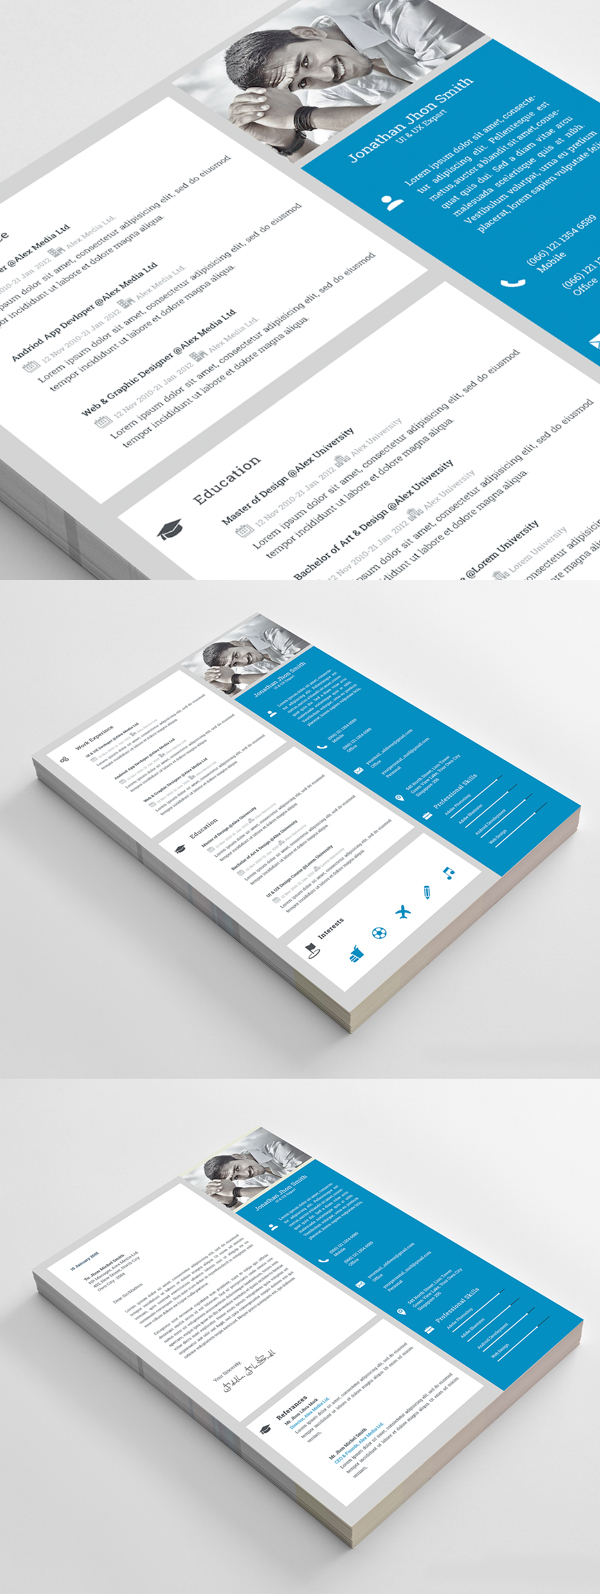 Free Resume Template and Resume Mockup PSD